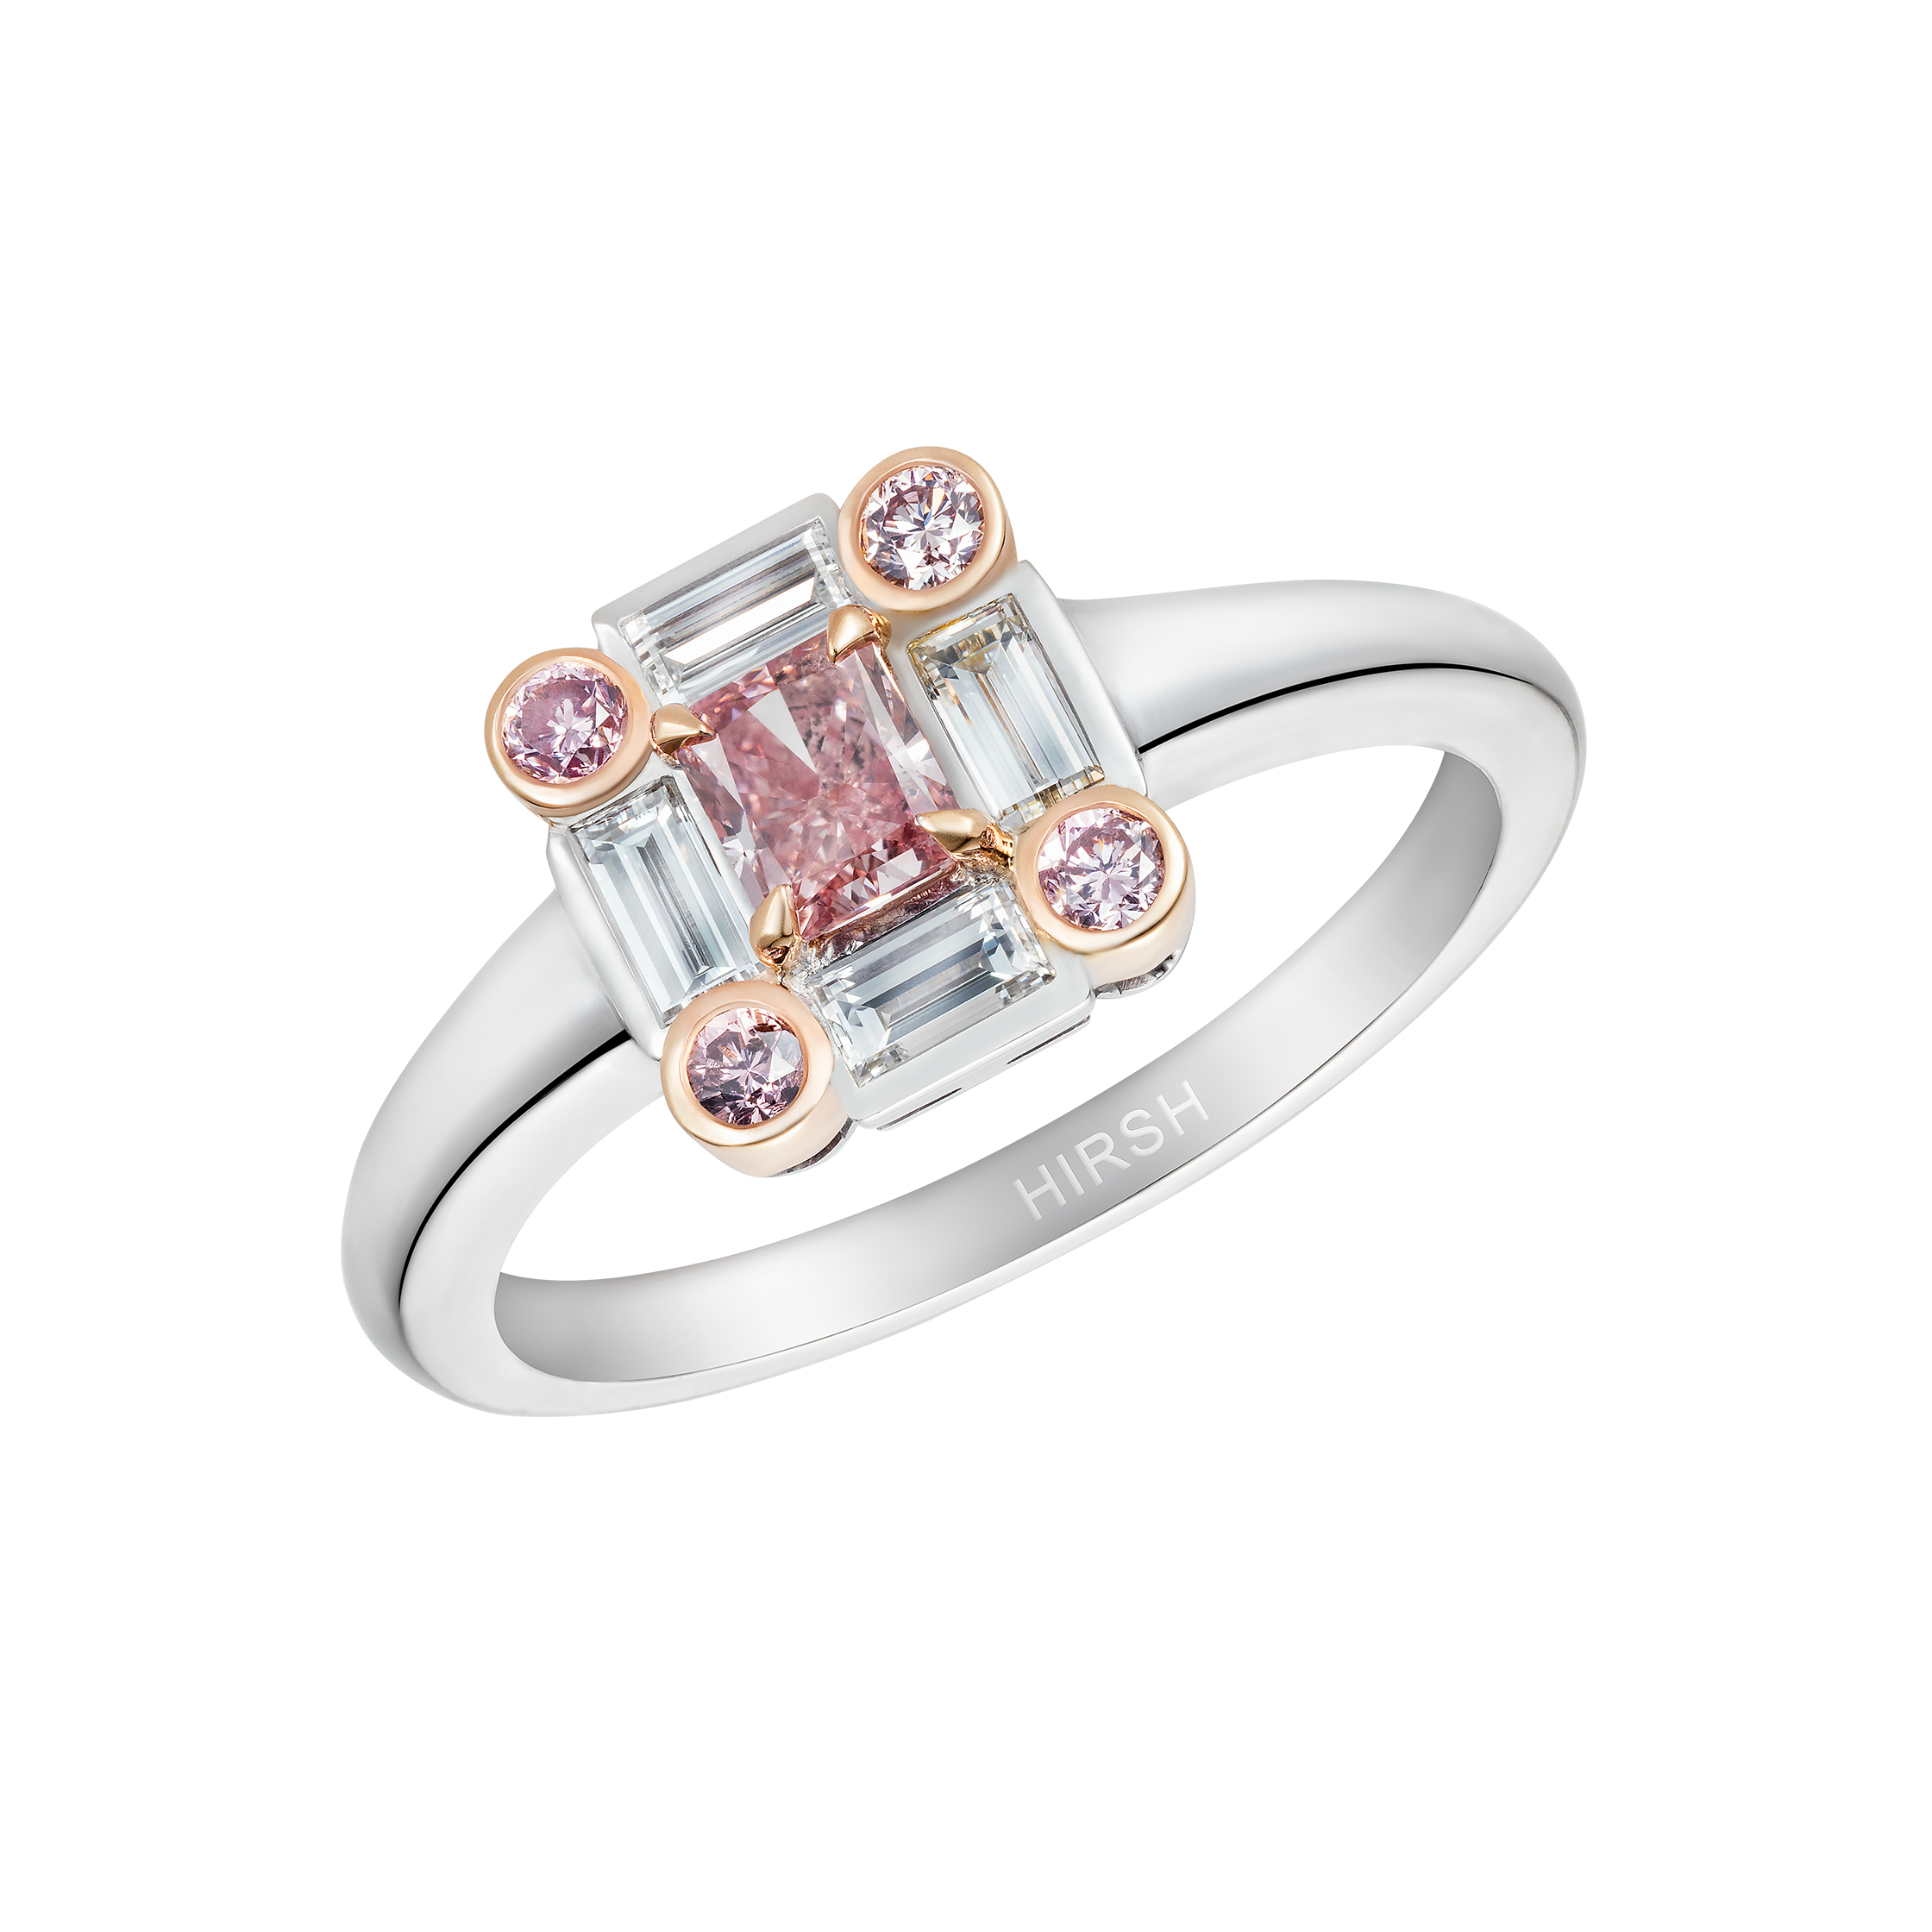 threestonering accents pink gia jewellery giadiamond engagement diamond ring with bridal trilogy lugaro rings sapphire stone heartpinksapphire